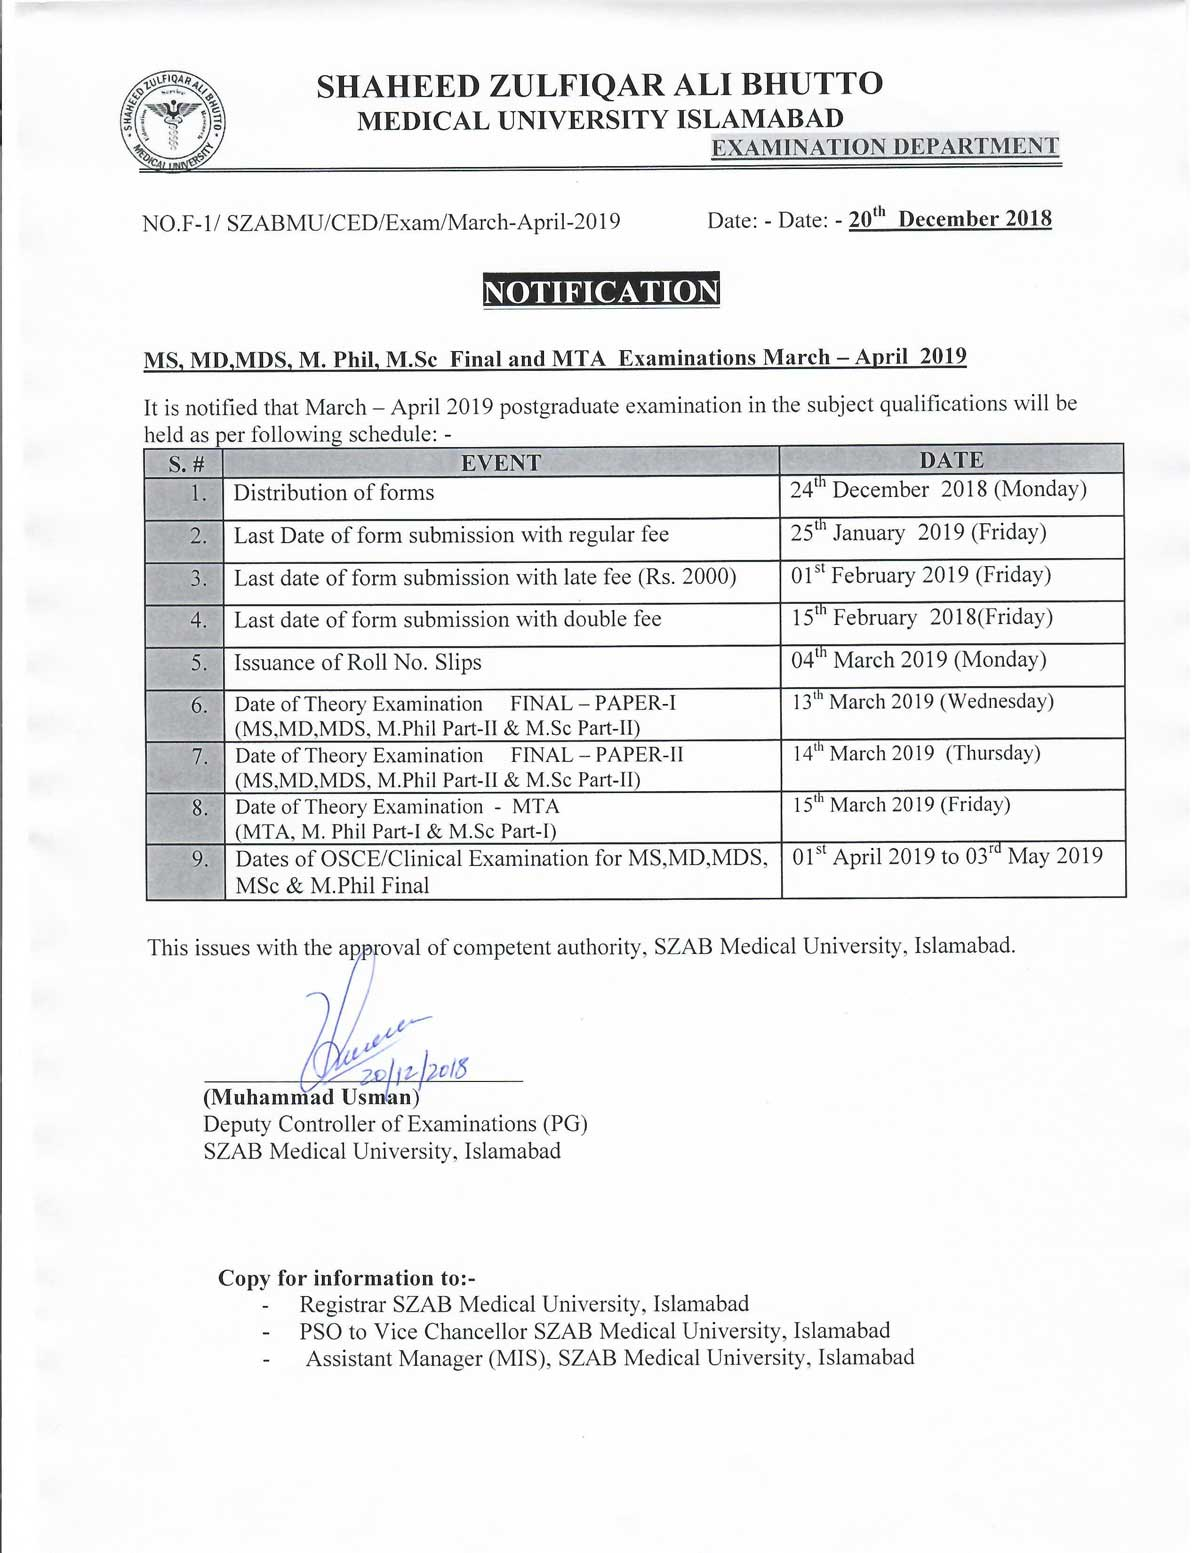 Notification for March/April 2019 Postgraduate Examinations